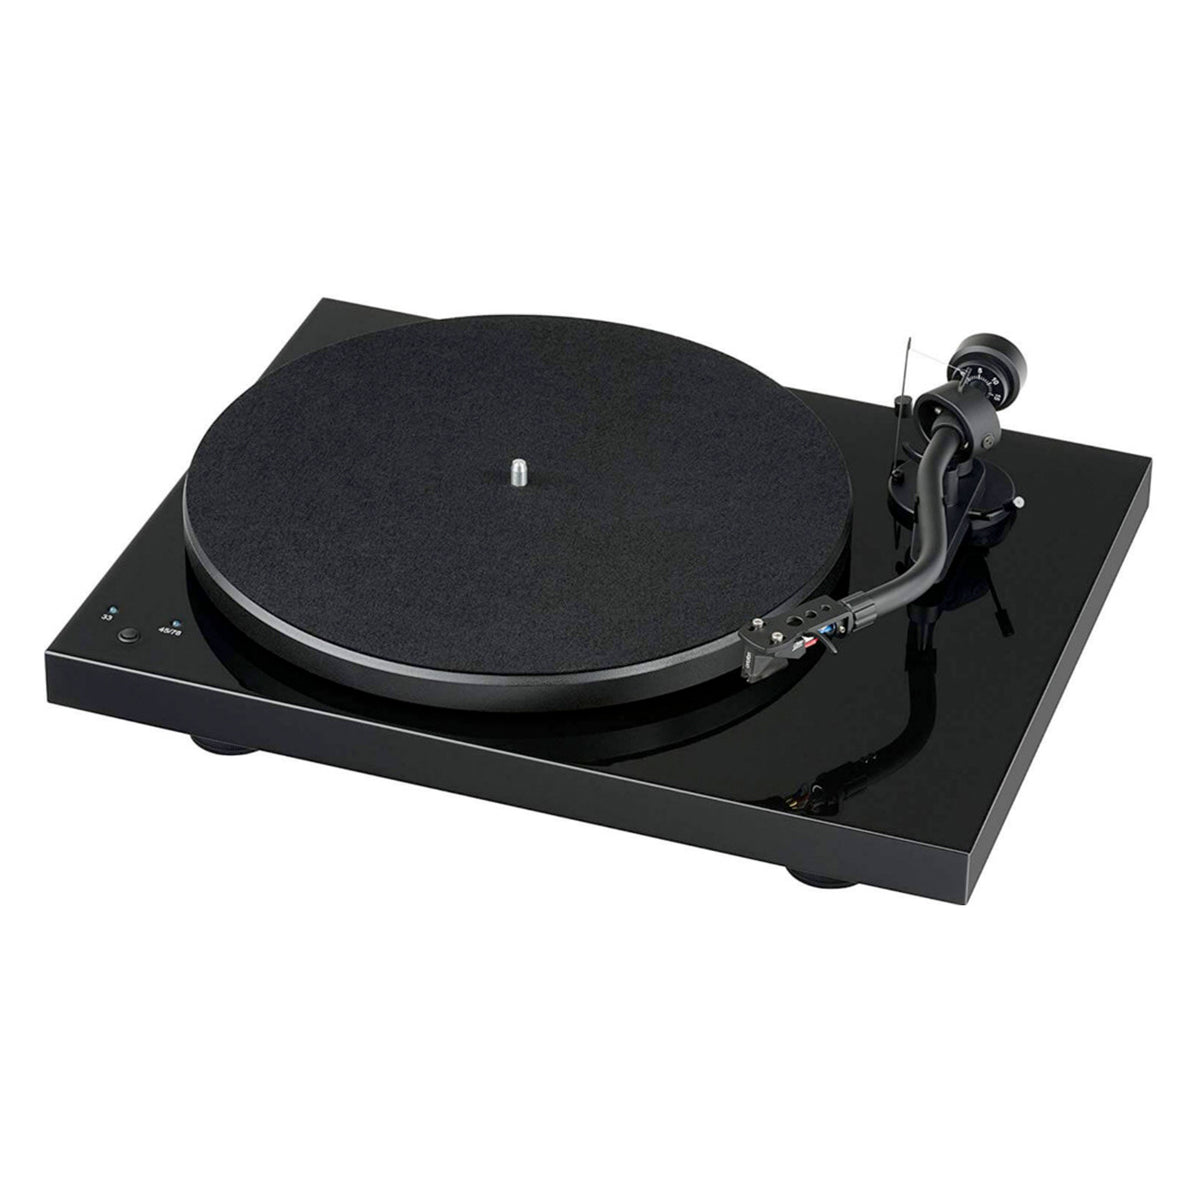 Pro-Ject: Debut SB S-Shaped Turntable - Piano Black